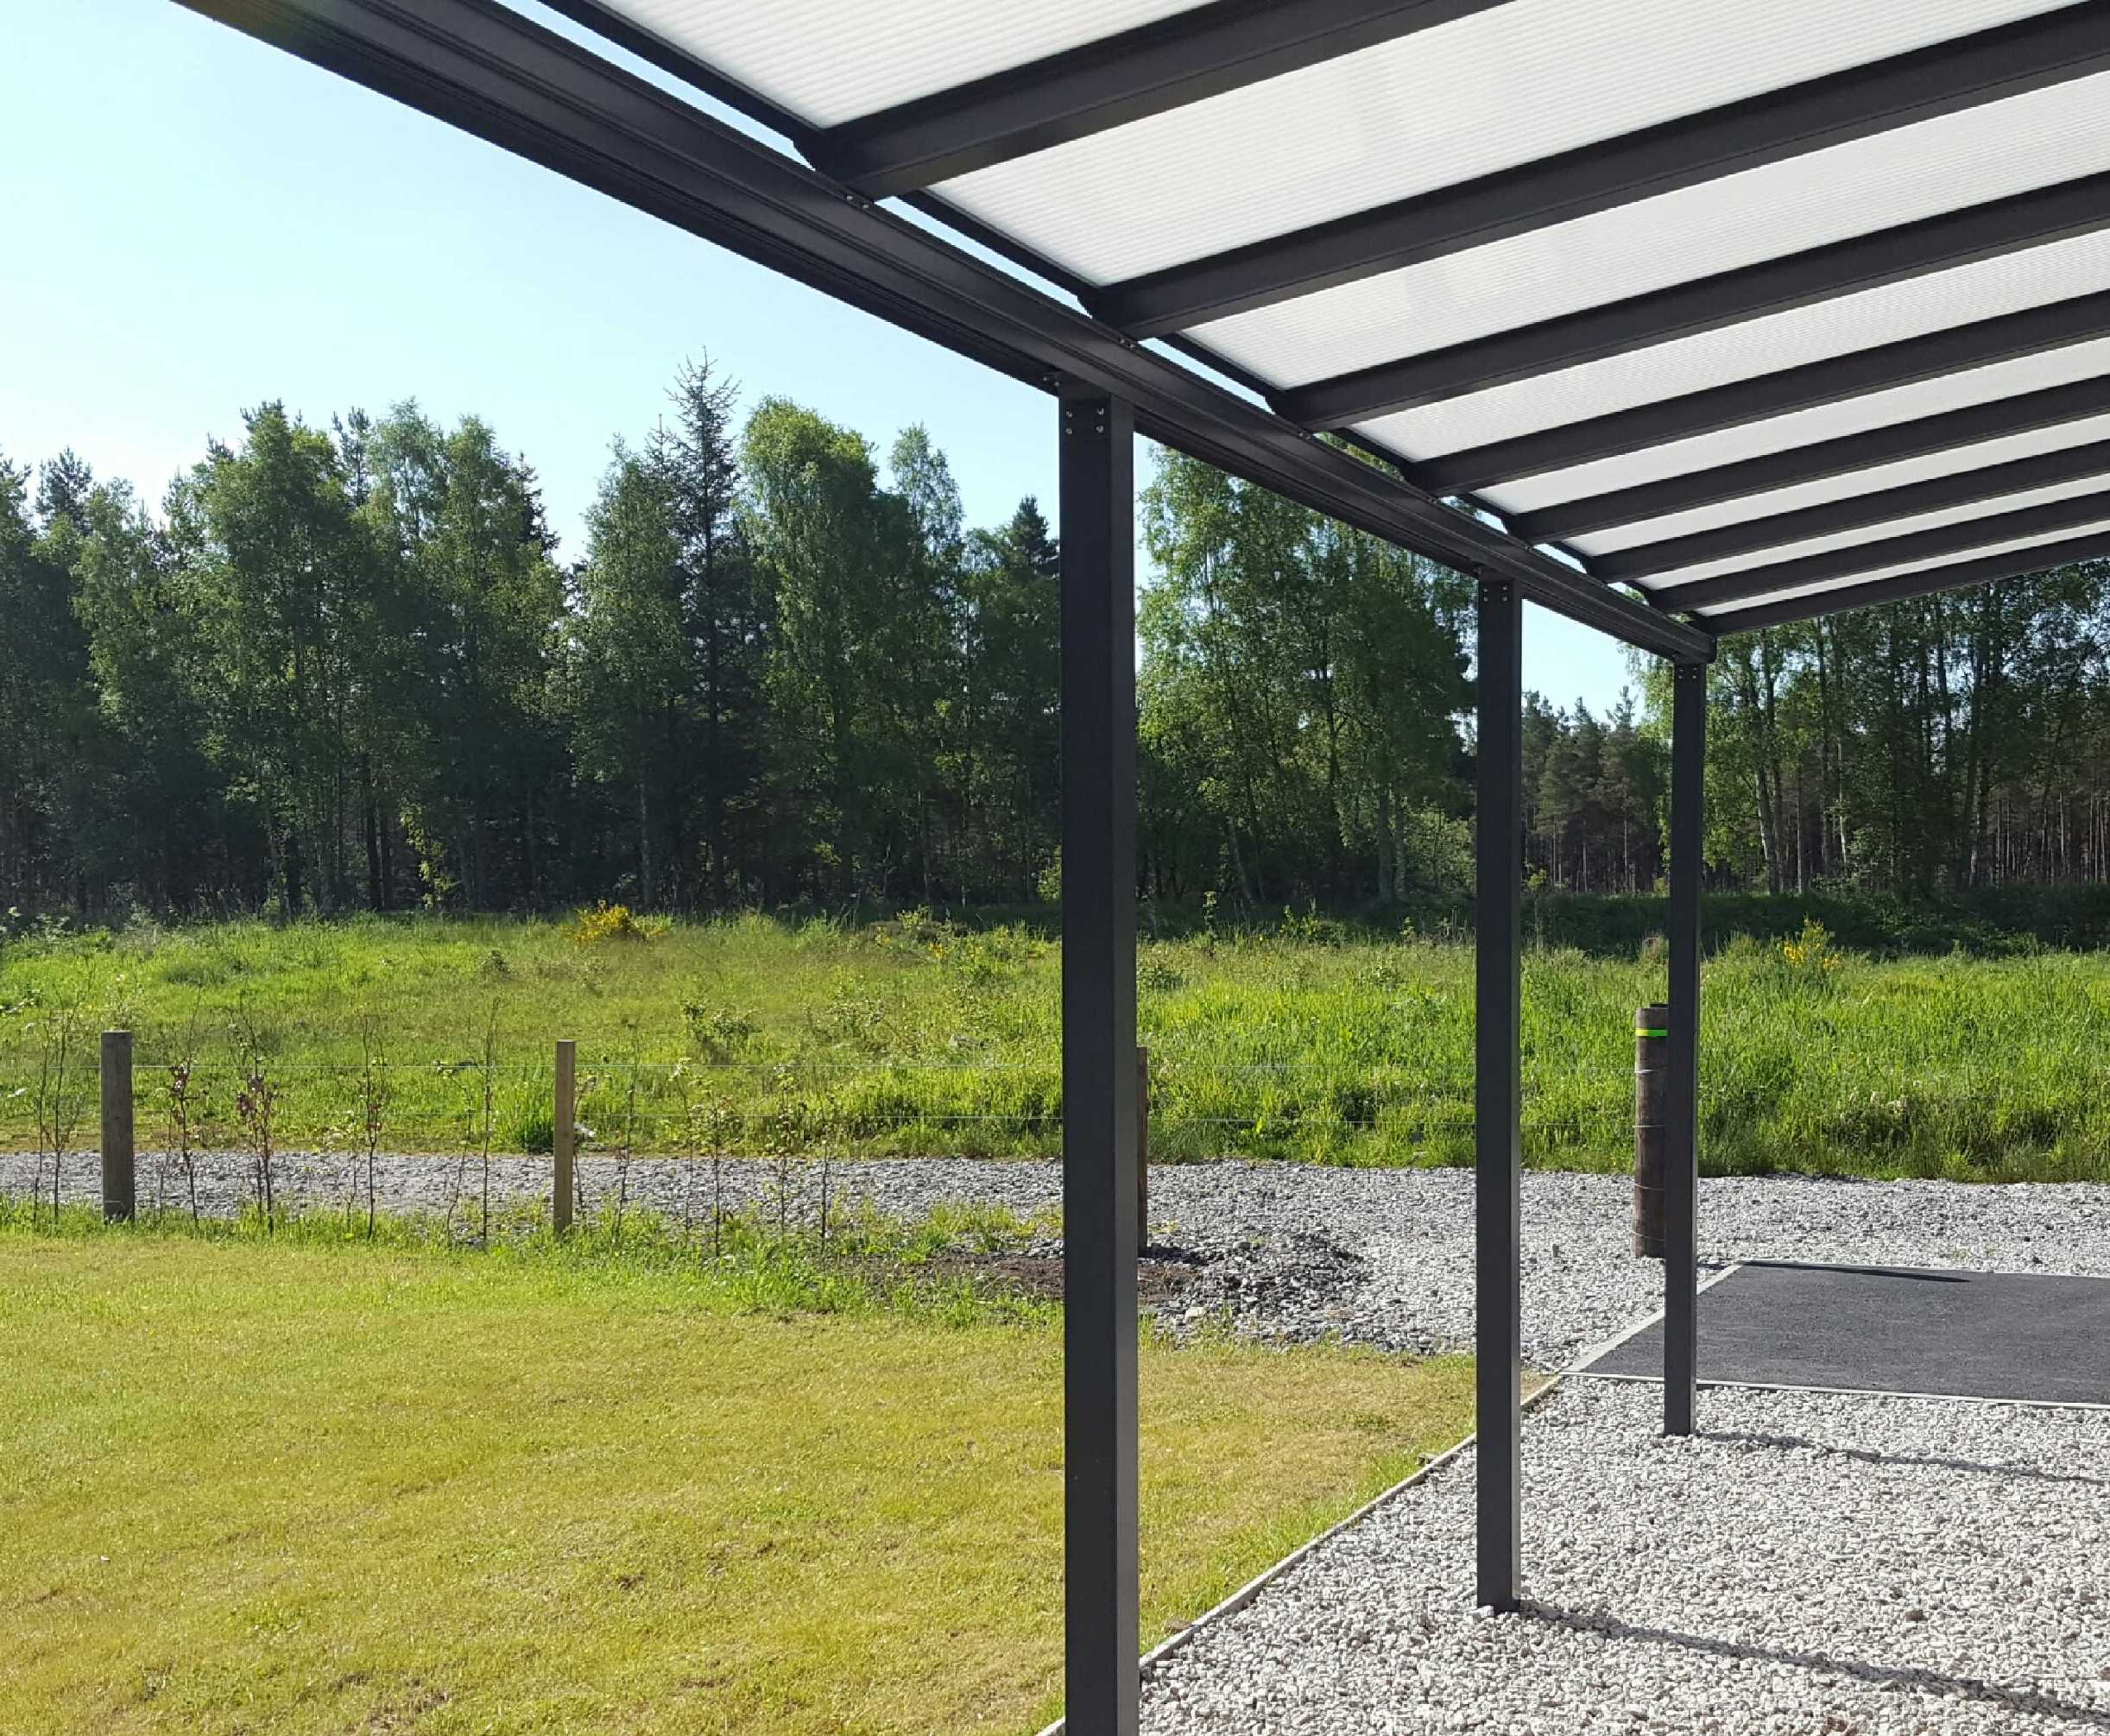 Omega Smart Lean-To Canopy, Anthracite Grey, 16mm Polycarbonate Glazing - 7.0m (W) x 4.5m (P), (4) Supporting Posts